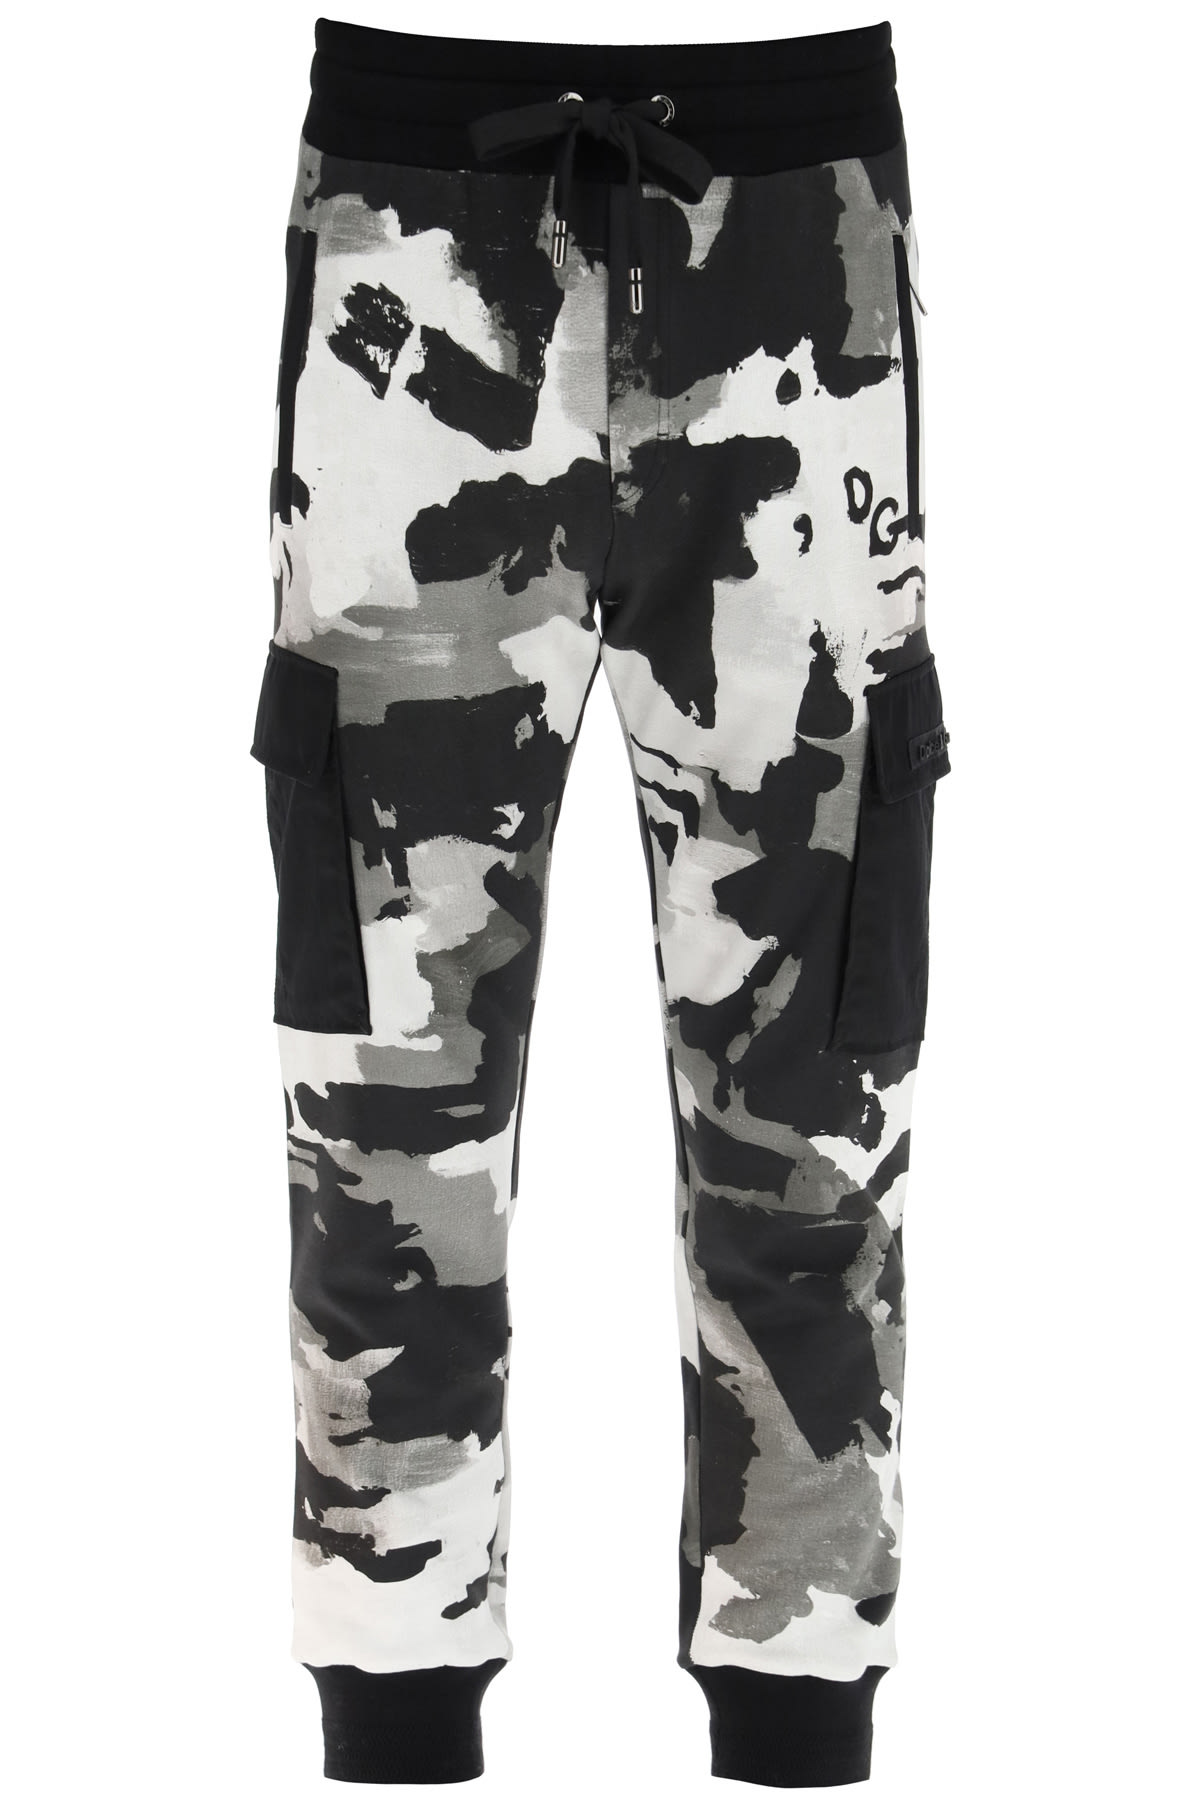 Dolce & Gabbana CAMOUFLAGE JOGGING TROUSERS